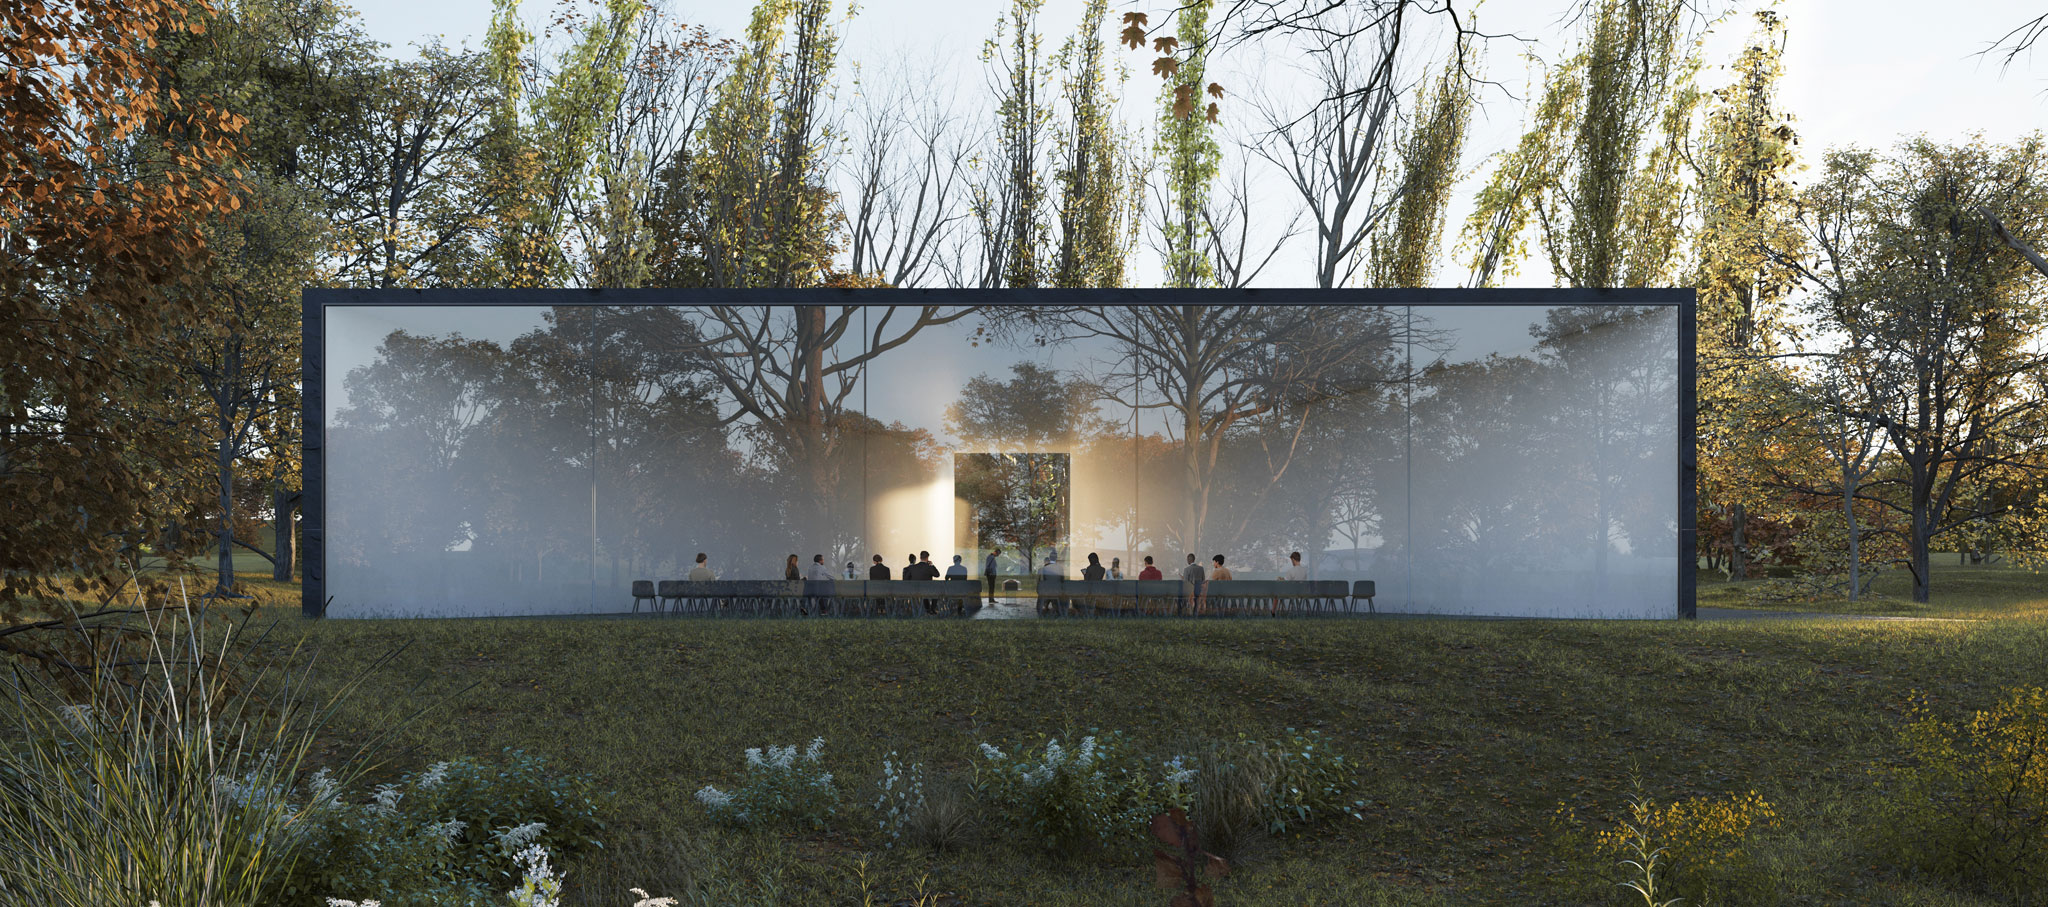 New Funeral Ceremony Centre by HofmanDujardin. Rendering by VERO Visual